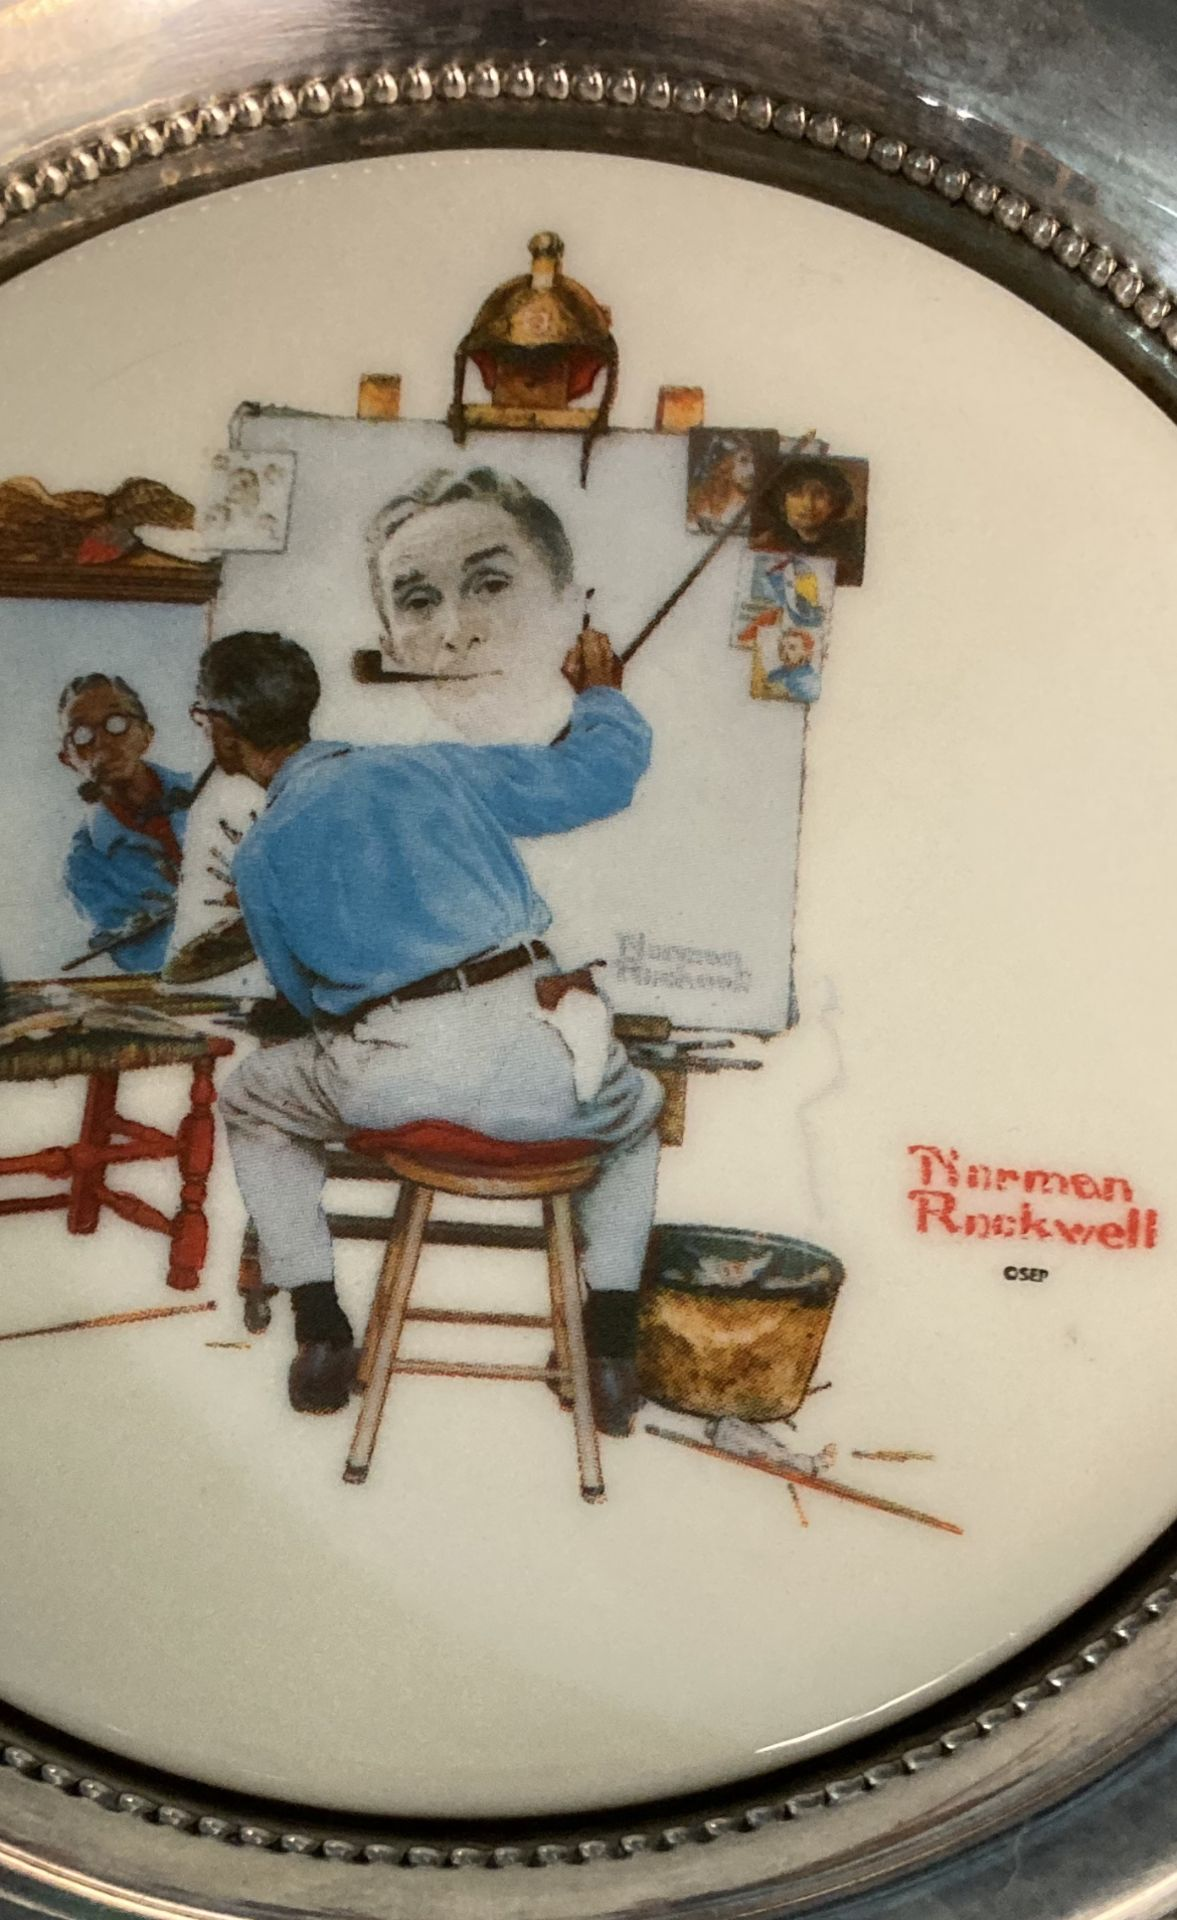 Norman Rockwell Plate in Silver (possibly plated) - Corham Collectors Society, First Edition, GCS 1 - Image 2 of 3